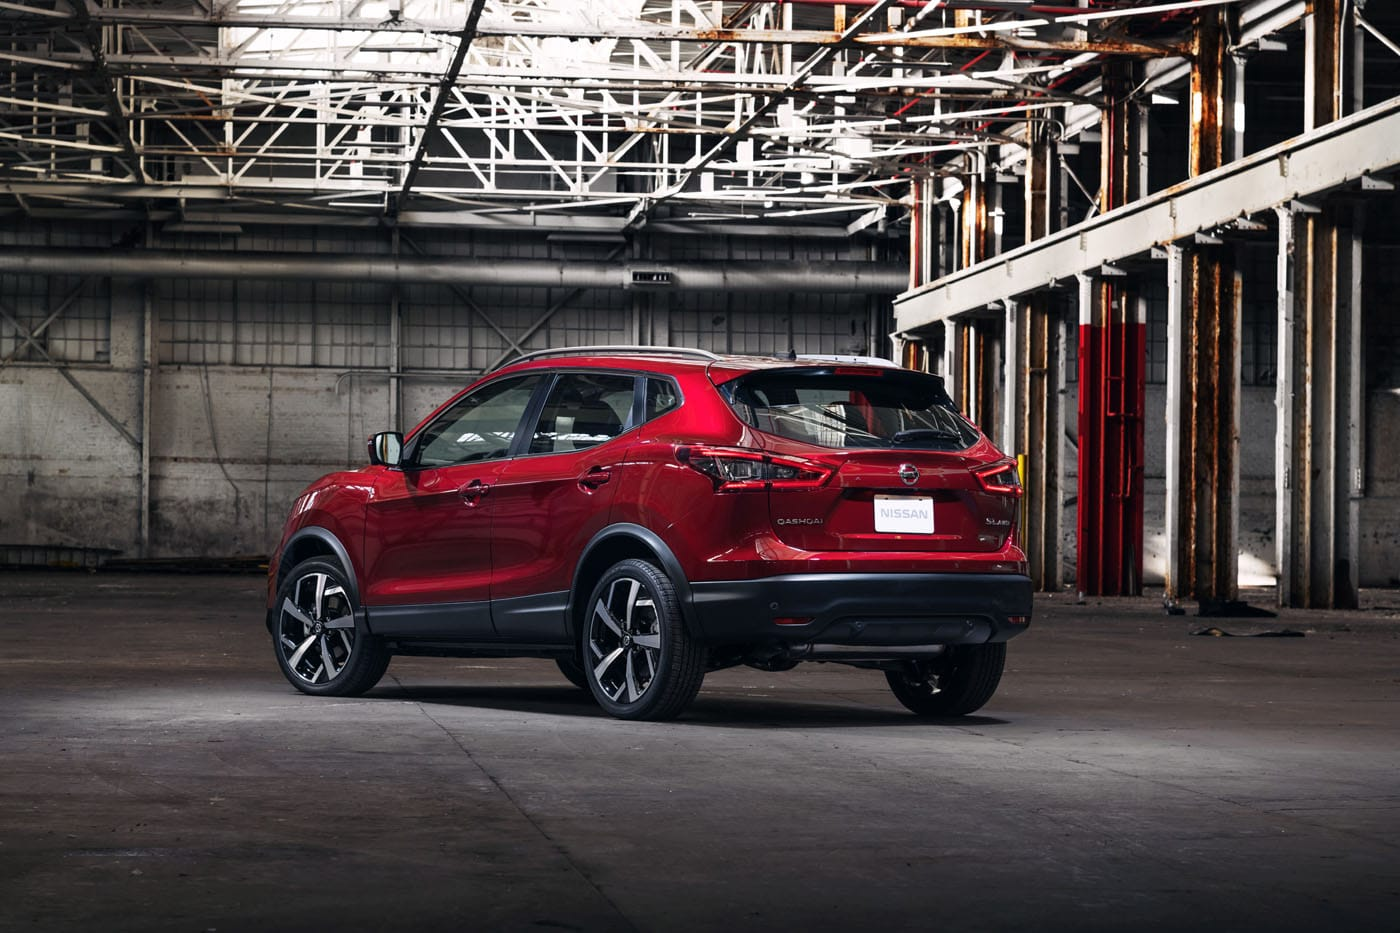 2020 Nissan Qashqai Arrives at Chicago Auto Show - Motor ...